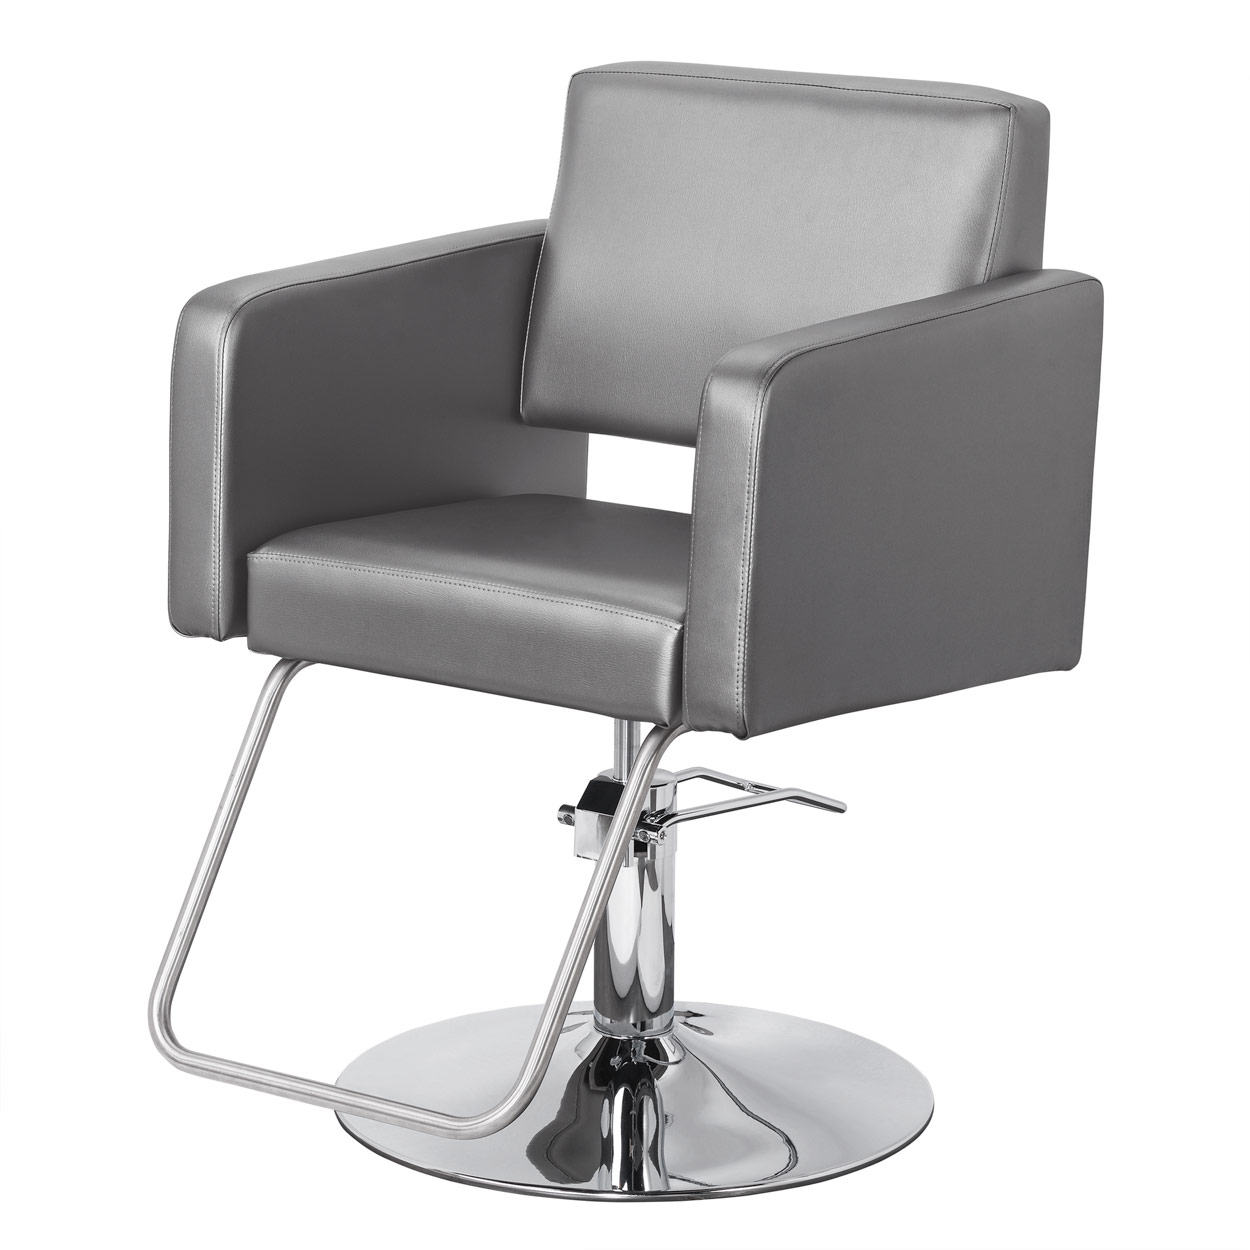 Modin Hair Salon Styling Chair in Grey or White  main product image